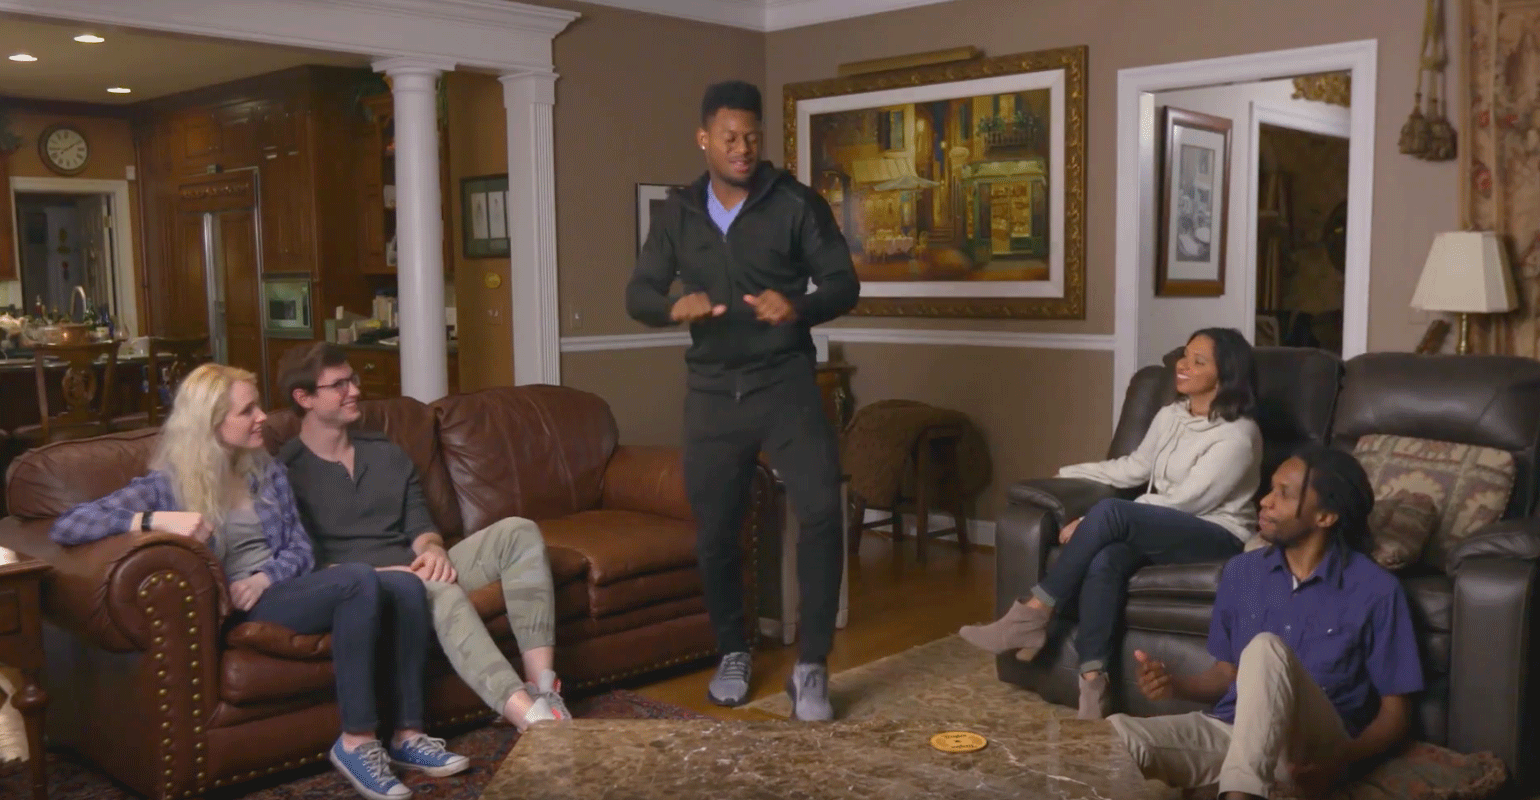 NRN video of the week: JuJu Smith-Schuster gets Pizza Hut fans dancing